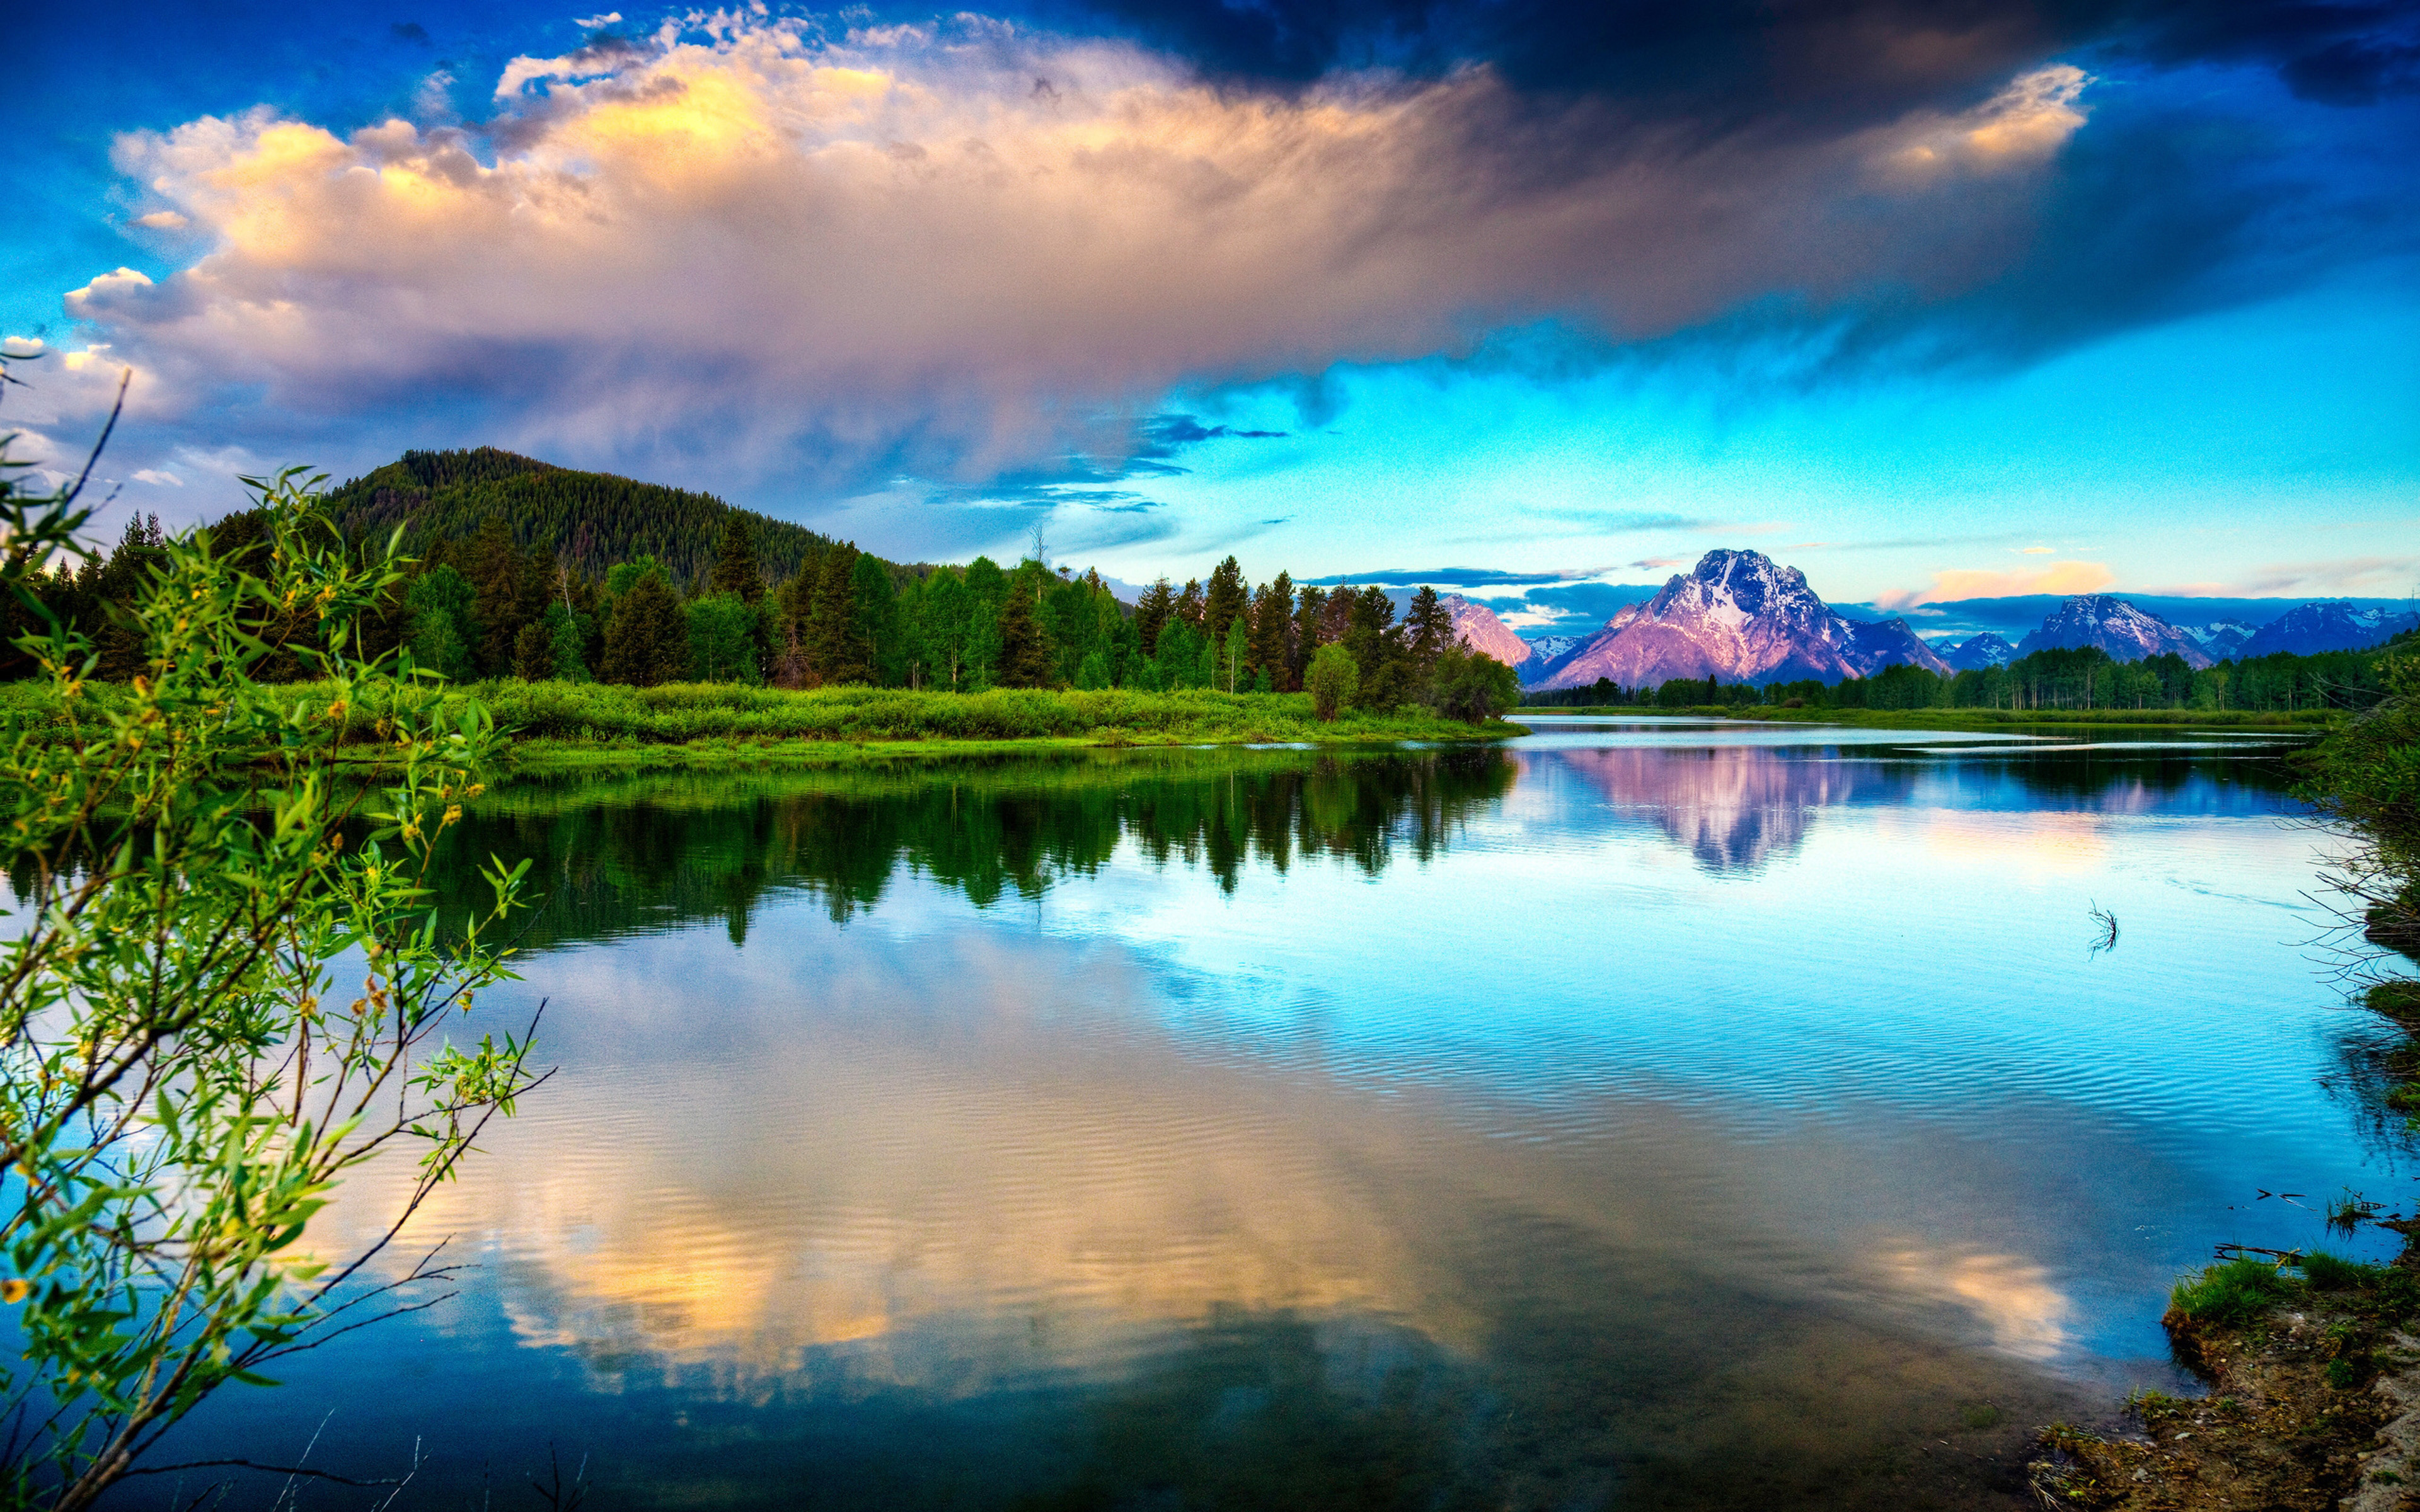 scenery wallpaper hd,sky,nature,natural landscape,reflection,water